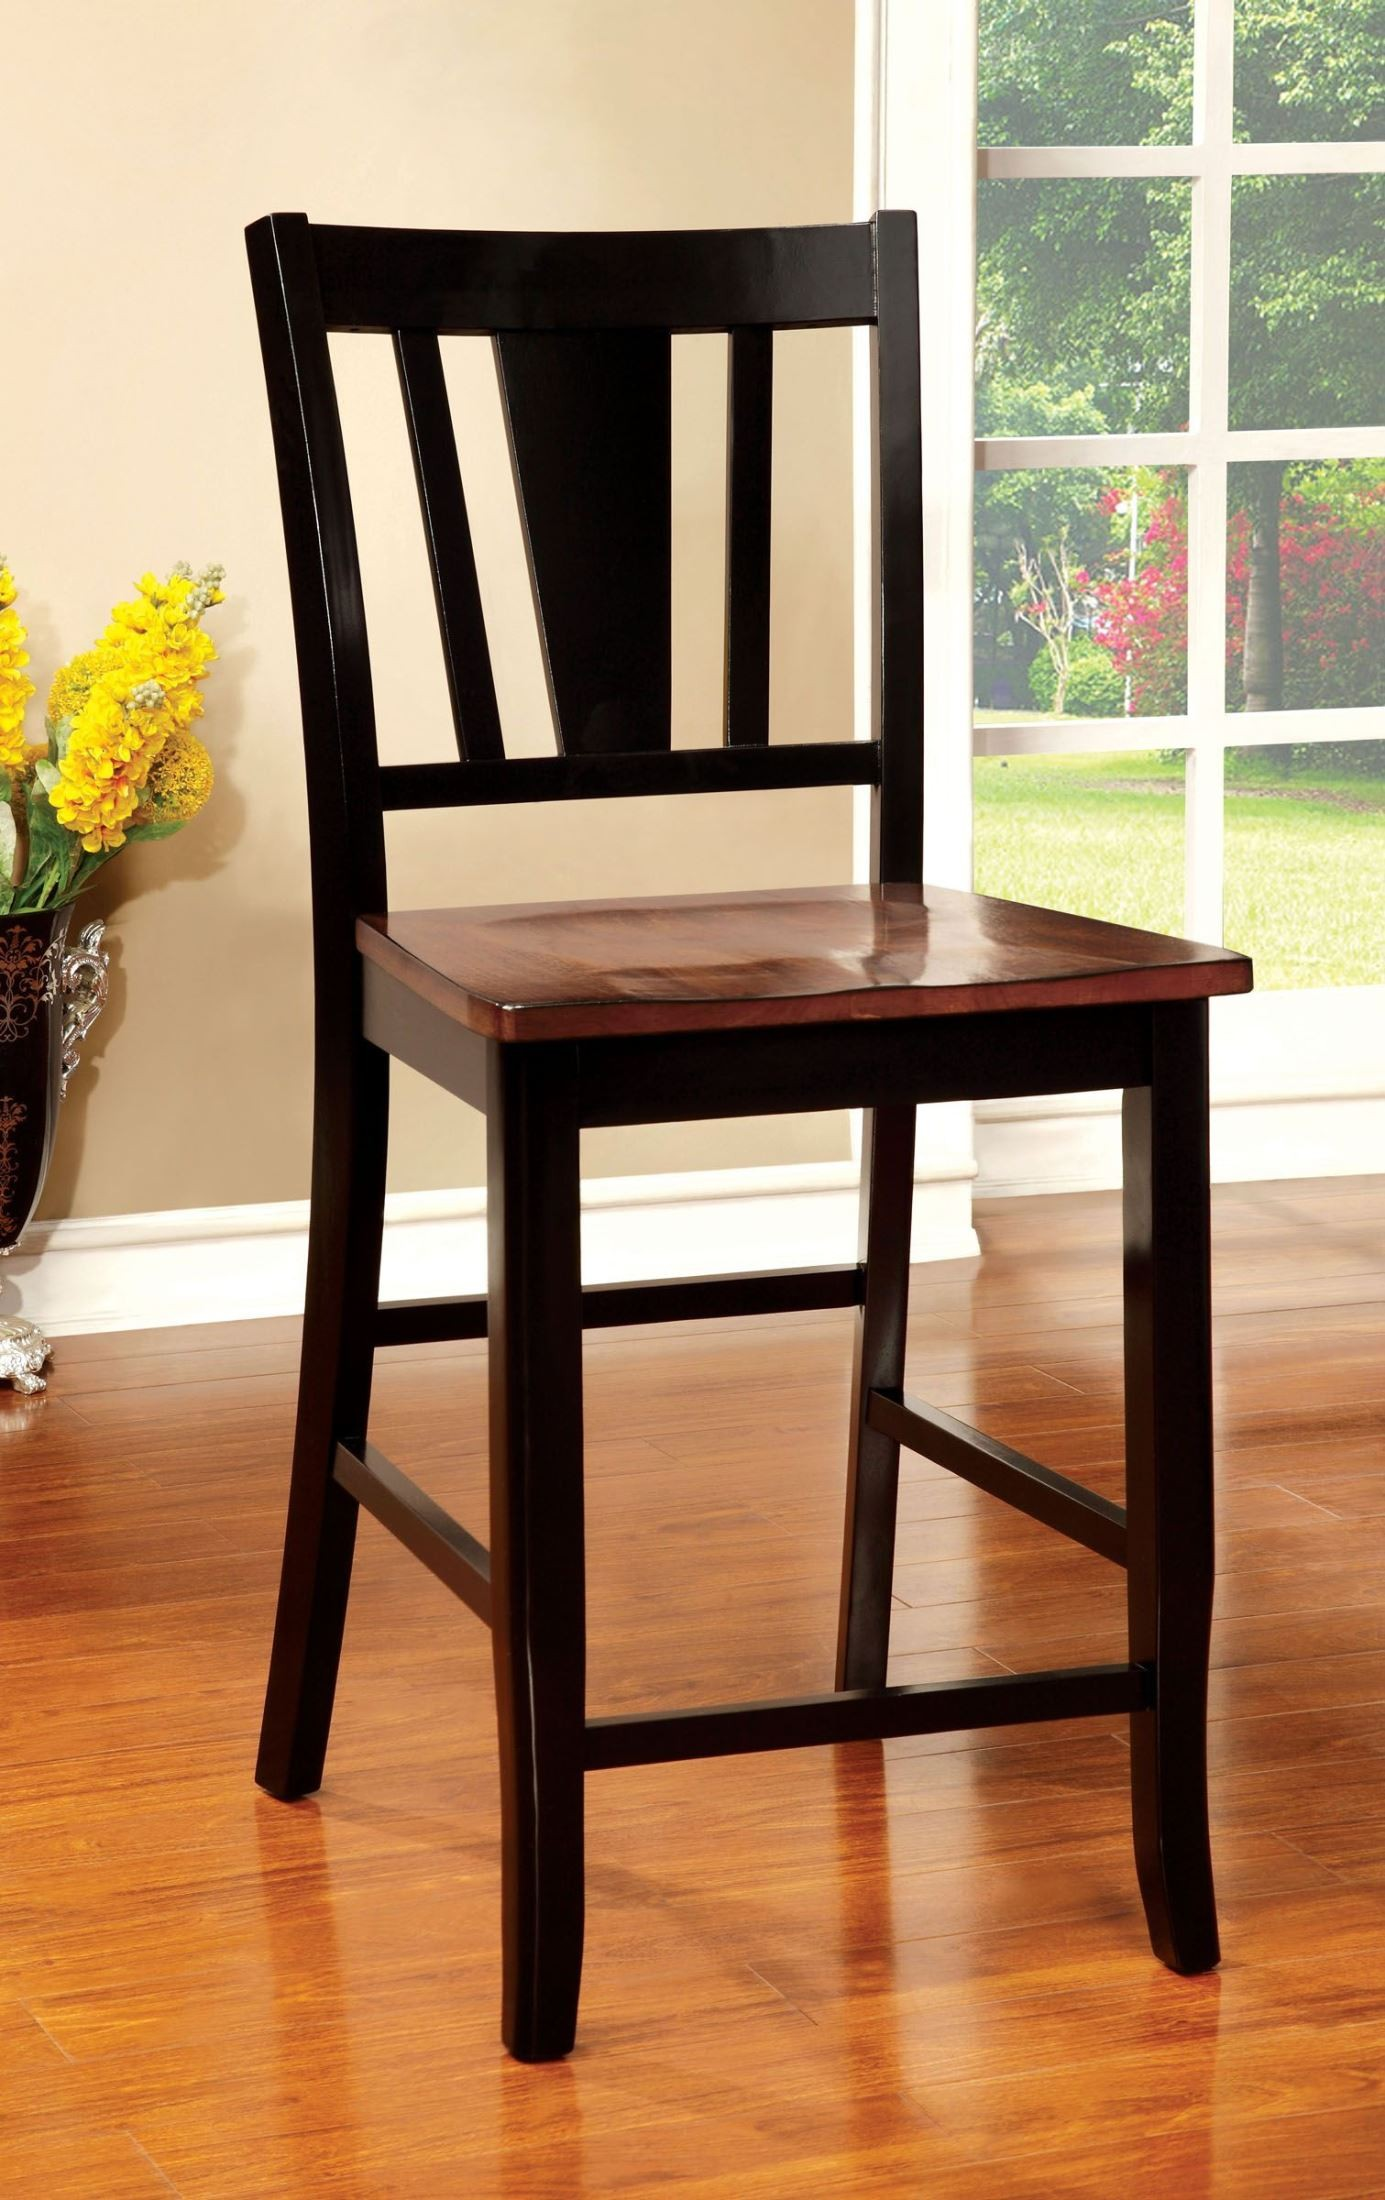 counter height chairs set of 2 lawn chair reviews dover ii black and cherry